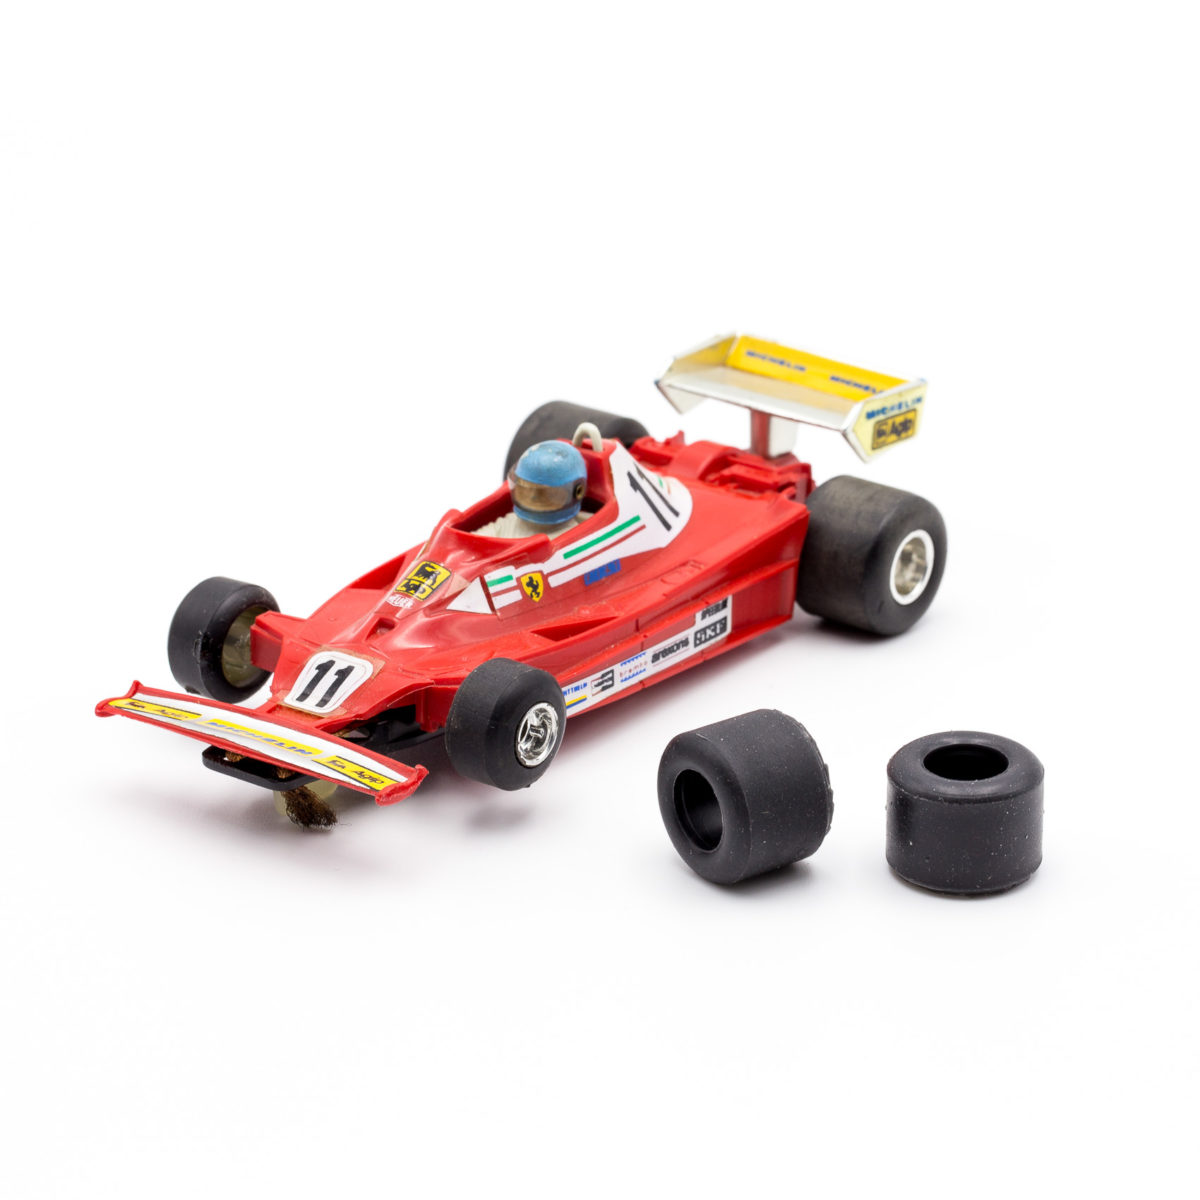 Rear Slot Car Tires for Polistil F1 Champion 175 1:32